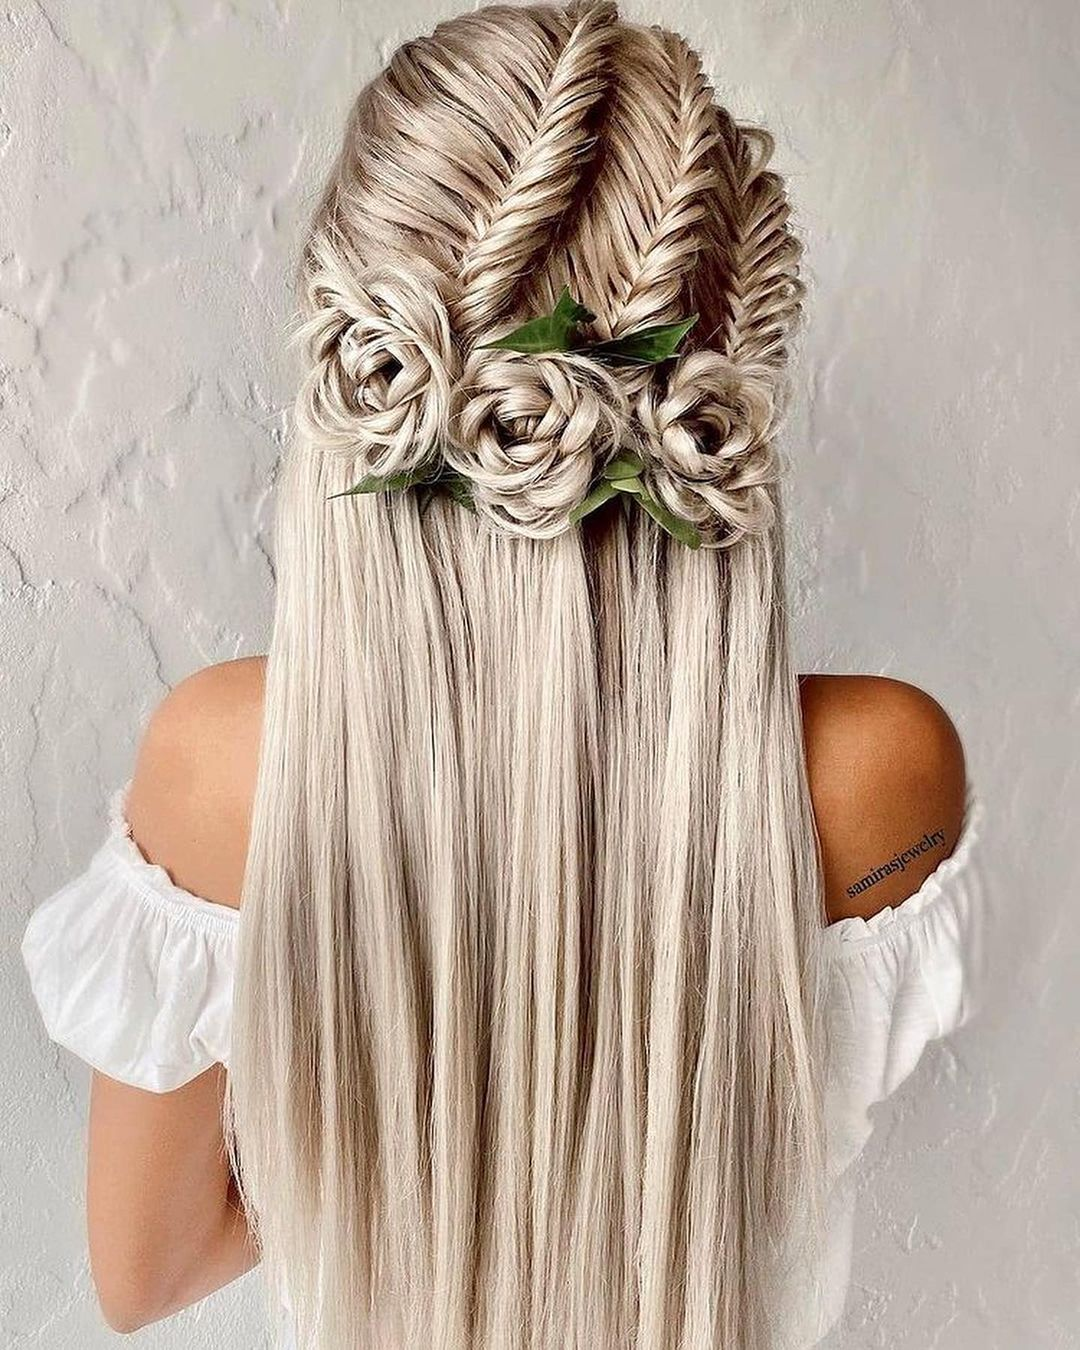 Romantic Roses with Long Straight Hair for a Whimsical Night